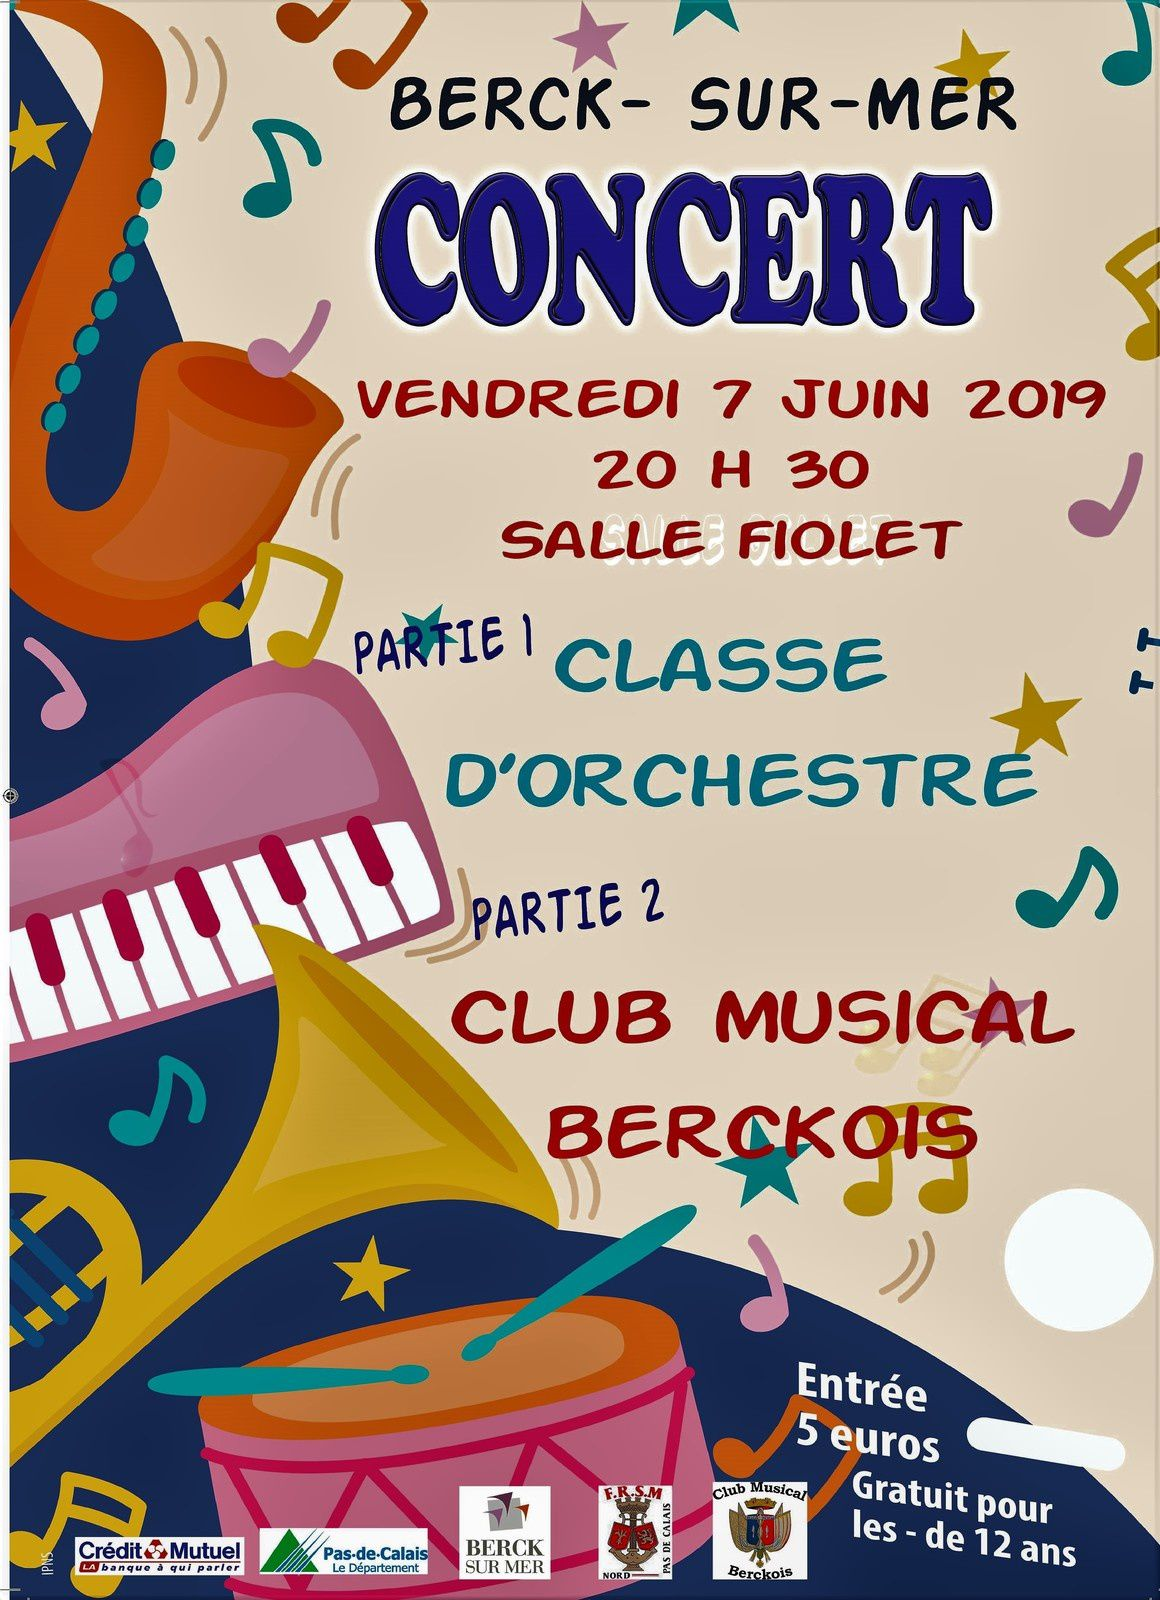 VENDREDI 7 JUIN 2019 - Concert de Printemps du Club Musical Berckois